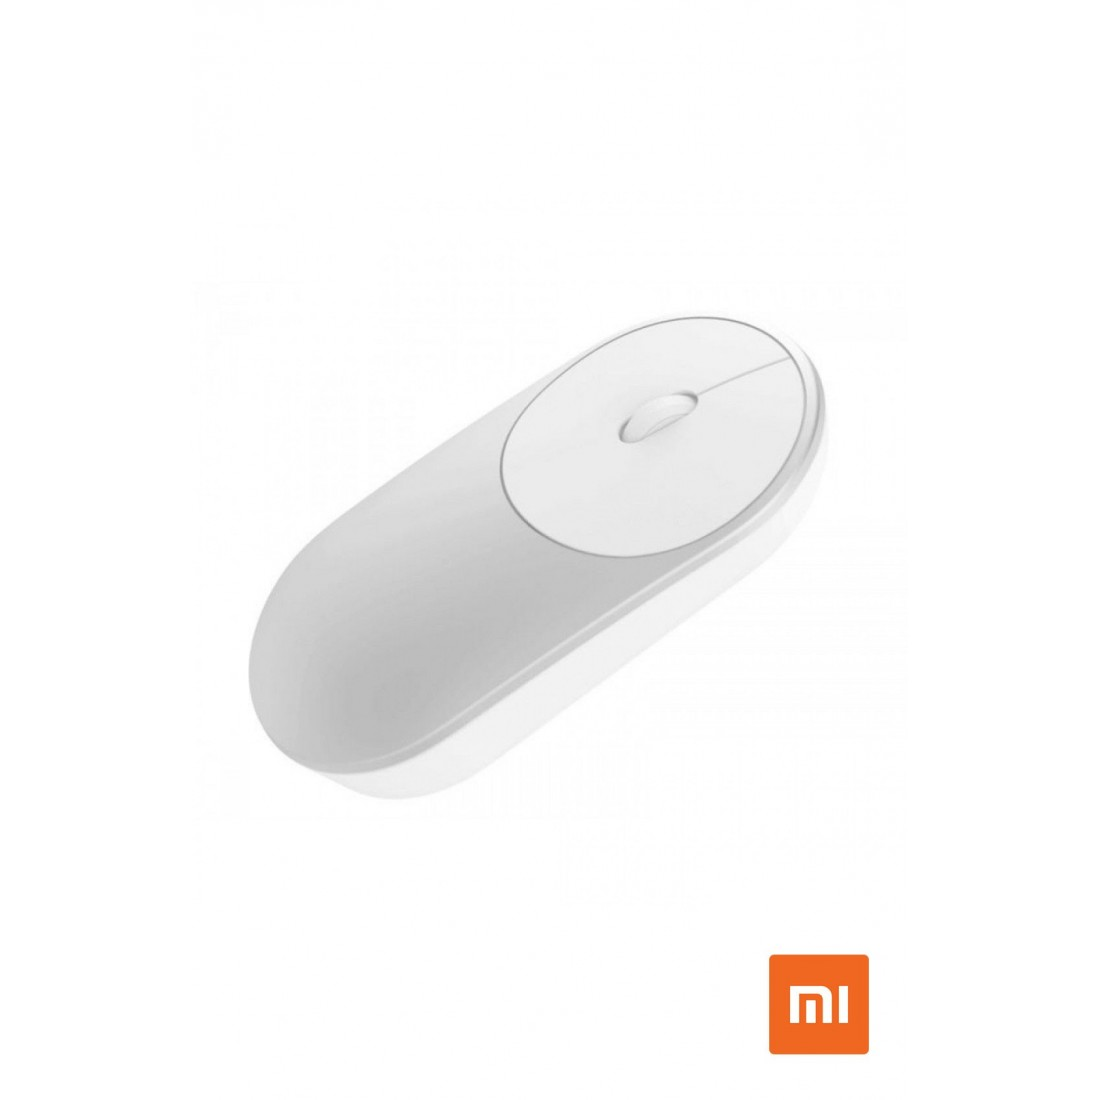 Xiaomi Mi Bluetooth 4.0 + 2.4GHz Wireless Laser Mouse for PC Laptop Tablet